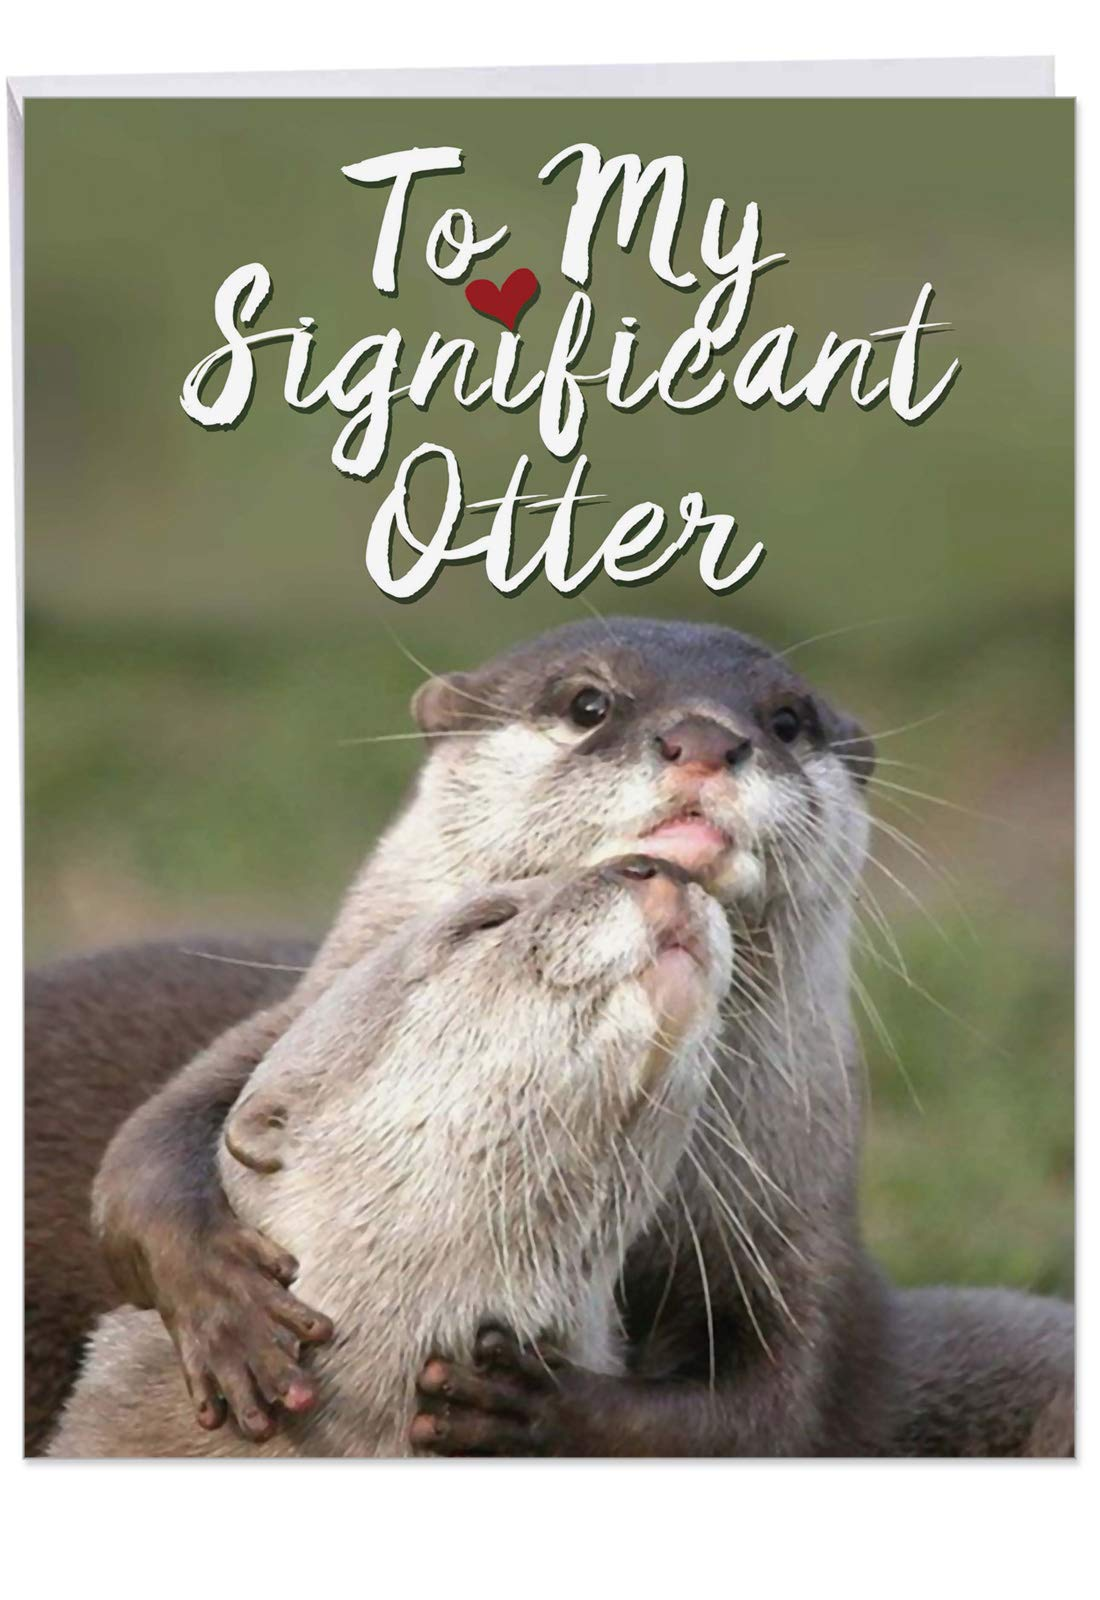 Significant Otters - Adorable Birthday Greeting Card for Husband, Wife (Big 8.5 x 11 Inch) - Cute Animal Bday Notecard with Envelope - Romantic, Loving Stationery Gift J5528BDG